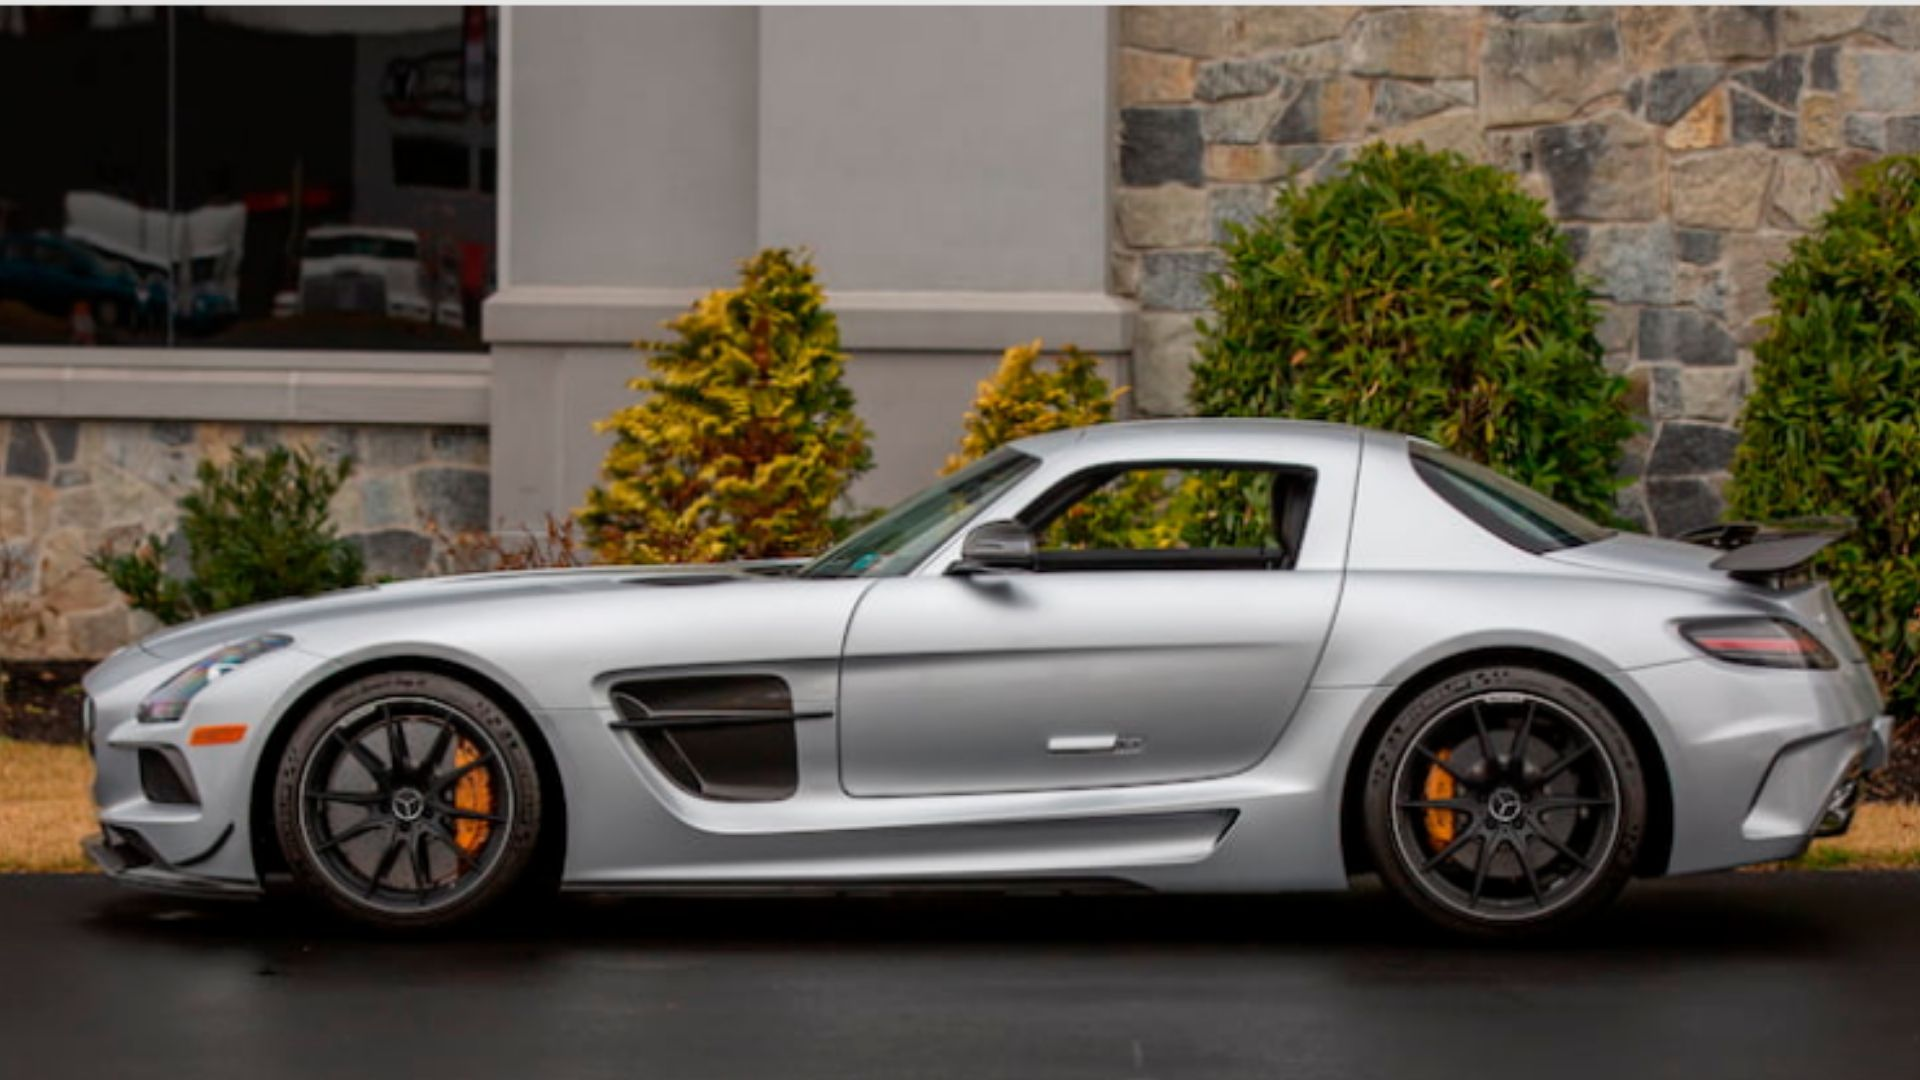 Late Real Estate Developer's Car Collection Heads To Auction